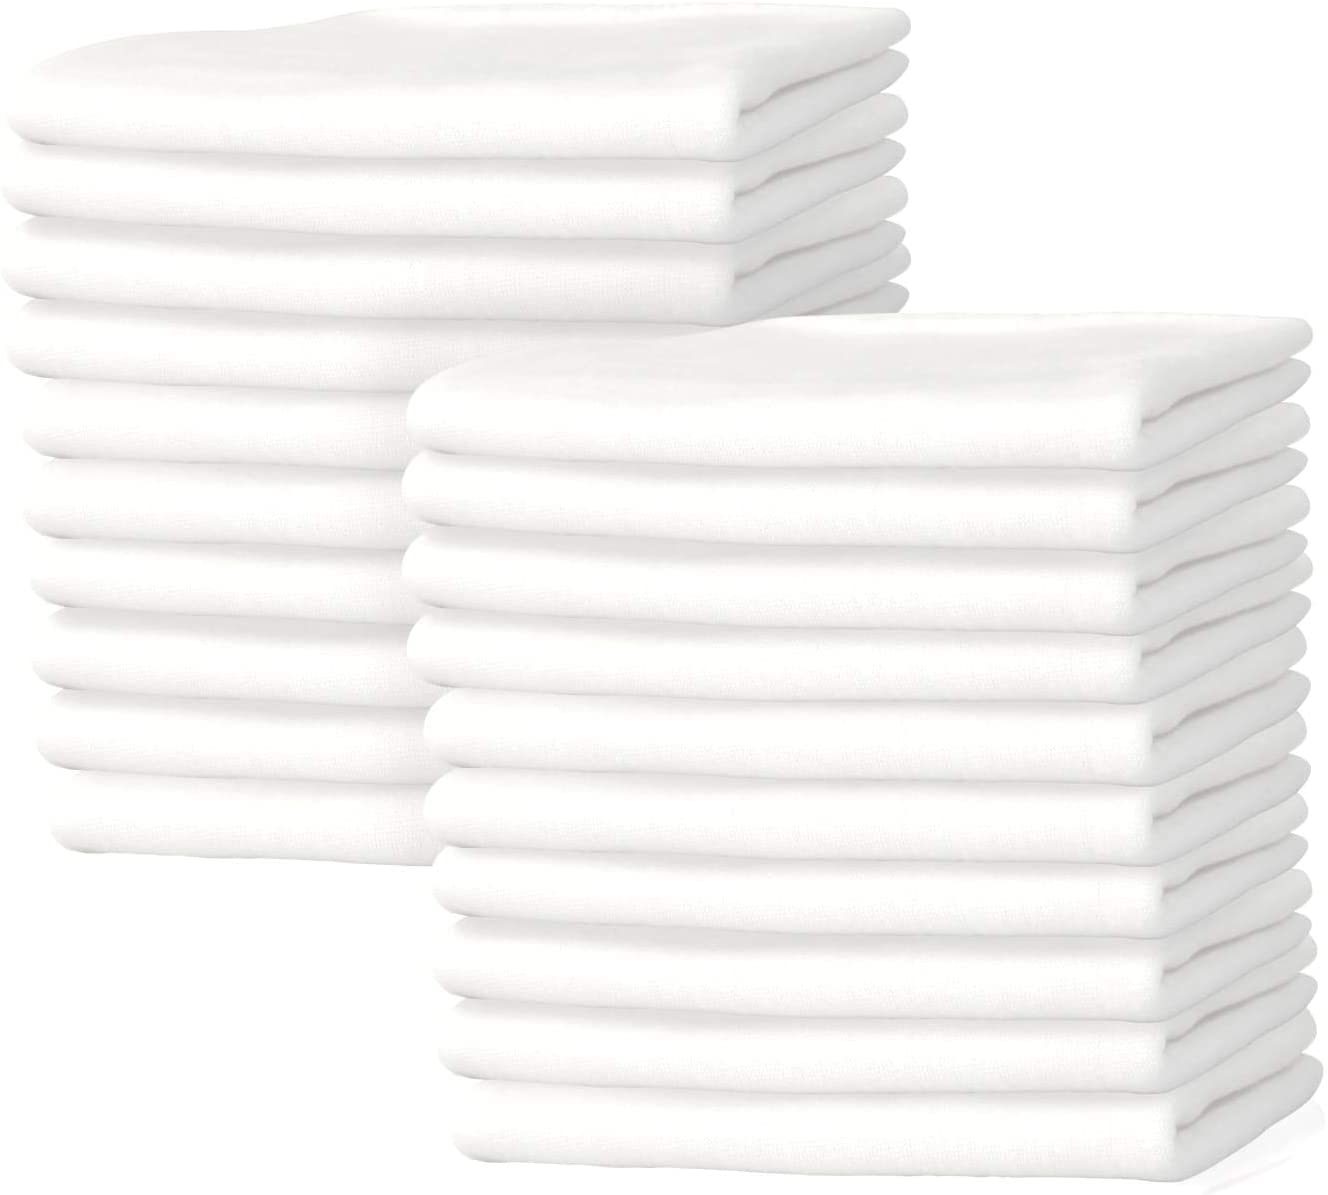 New Premium White T-Shirt Knit Rags, 100% Cotton, Cloth Rags, Excellent for General Cleaning, Spills,Home,Staining,Polishing, Bar Mop & More by Nabob Wipers (White Knit, 1 Lb Bag)